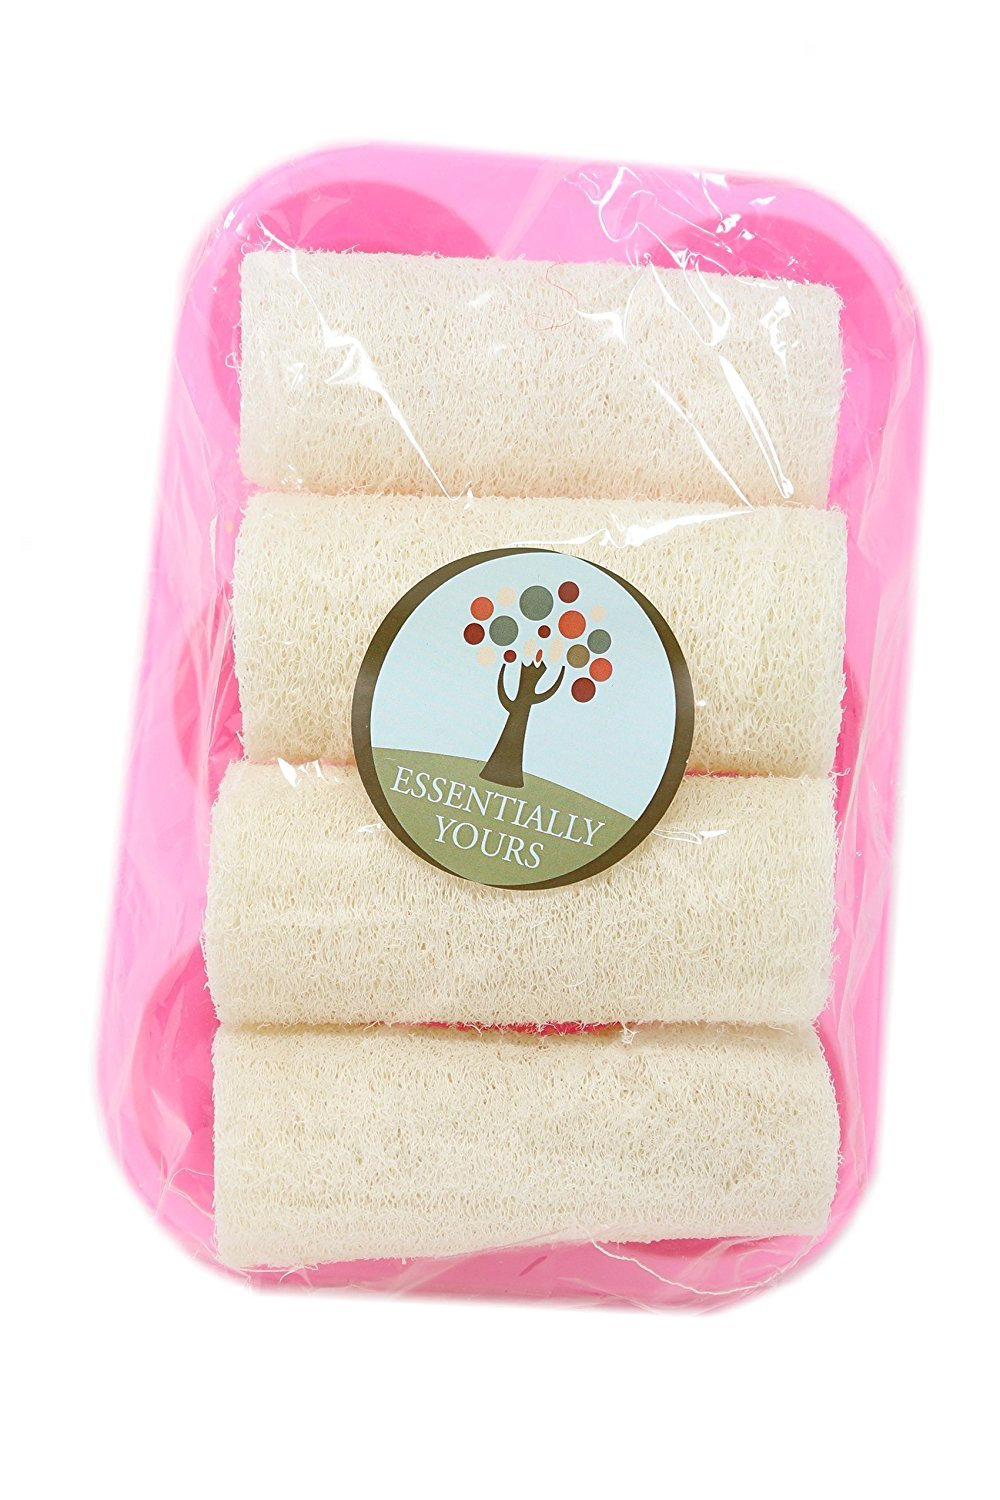 Natural Loofah Sponges with Soap Making Tray - Face, Body, and Back Exfoliating Loofahs| 4 Luffa Pack with 6 Section Soap Mold Tray Included Essentially Yours